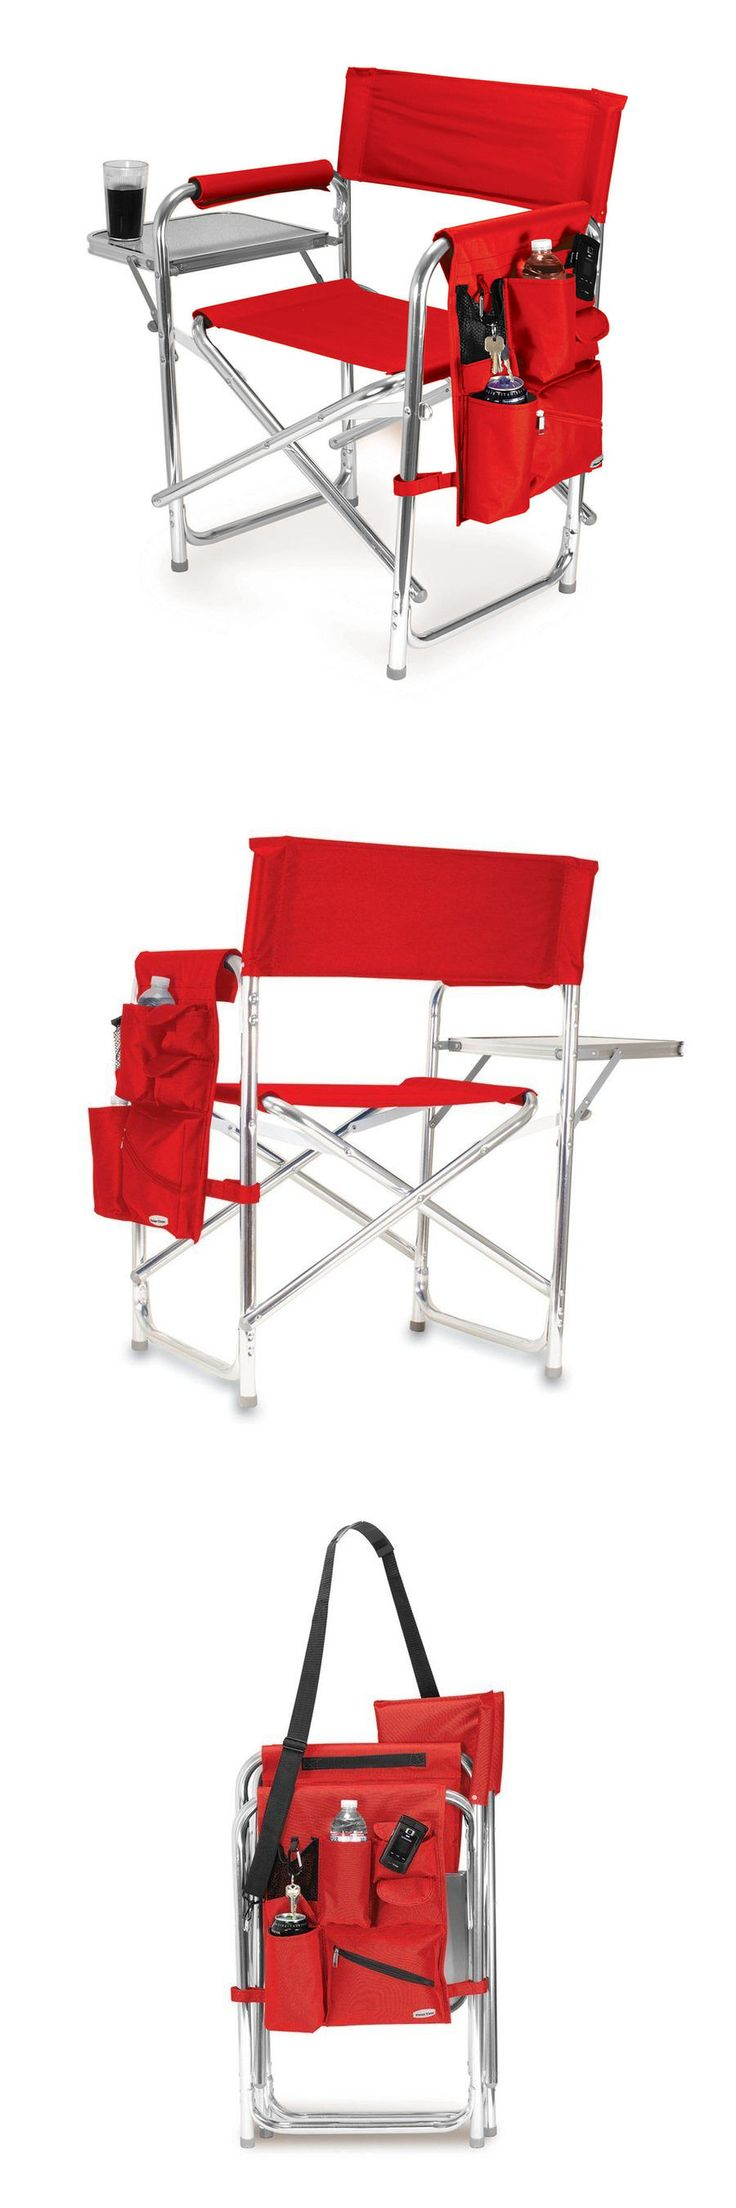 Camping Furniture 16038: Folding Camping Chair Portable Beach Picnic Fishing Hiking Seat Aluminum Red -> BUY IT NOW ONLY: $107.93 on eBay!